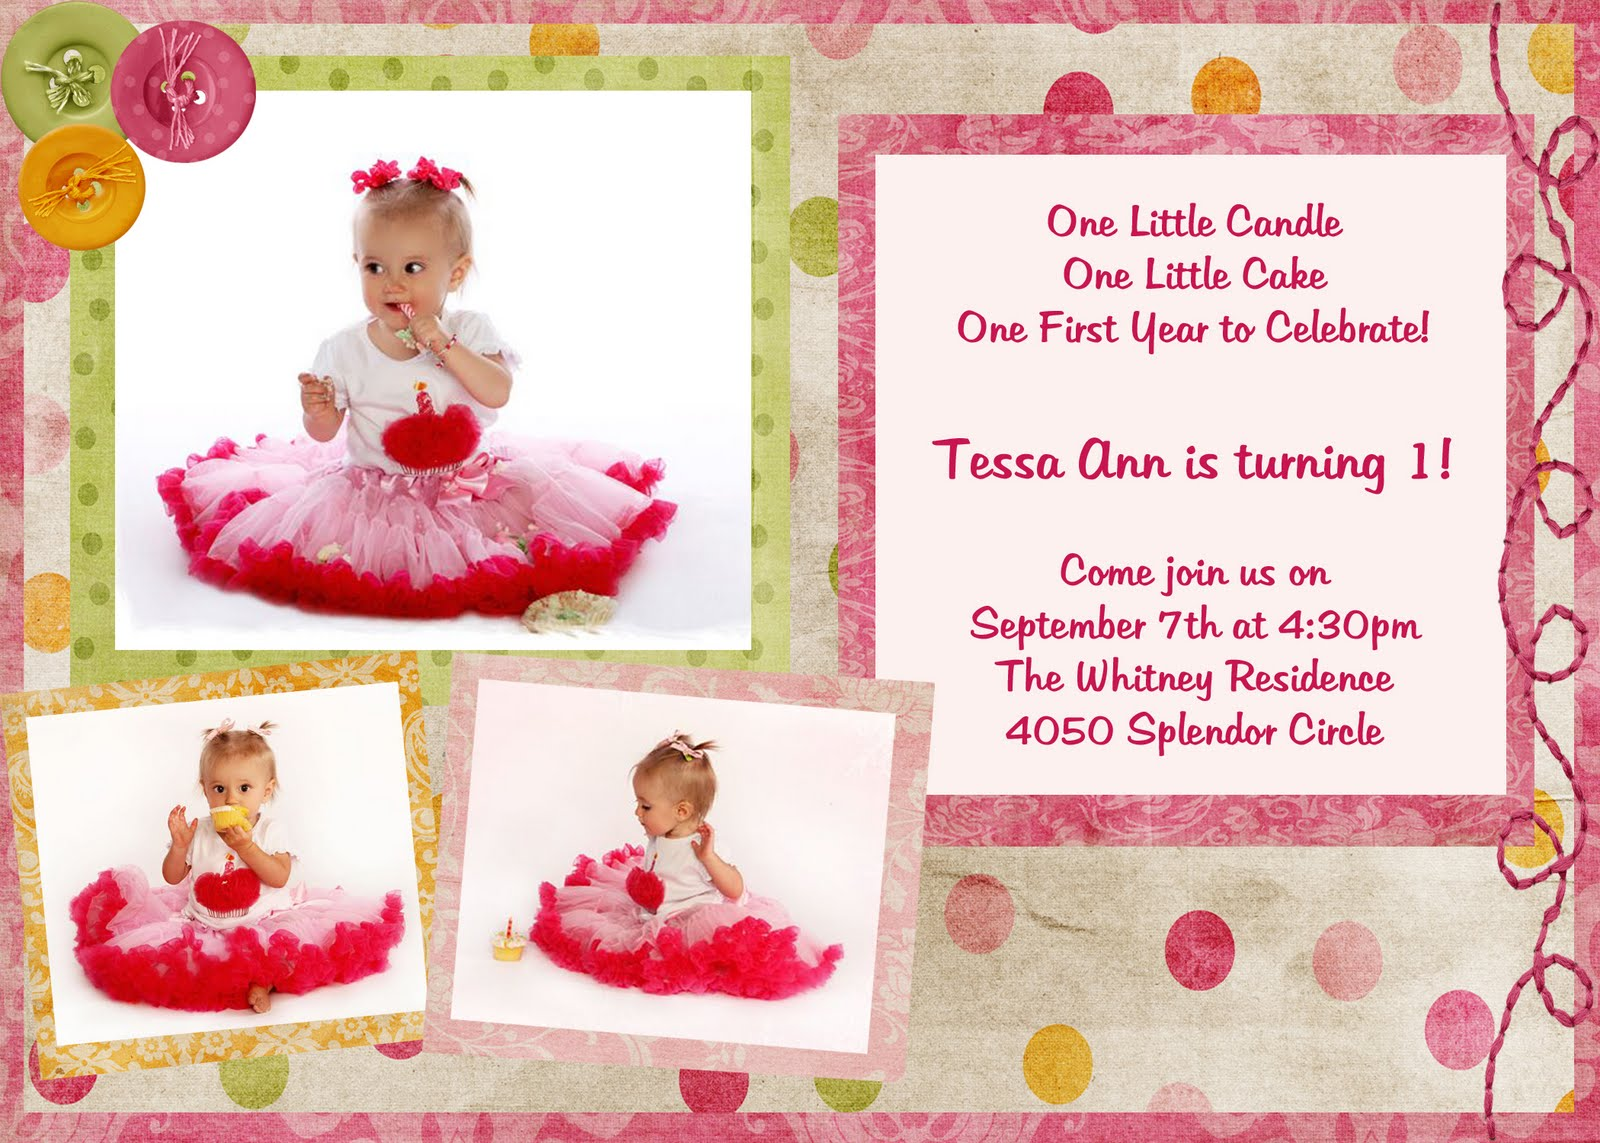 1st birthday invitation cards for daughter ; 1st-birthday-invitation-cards-for-daughter-cute-first-birthday-invitations-0